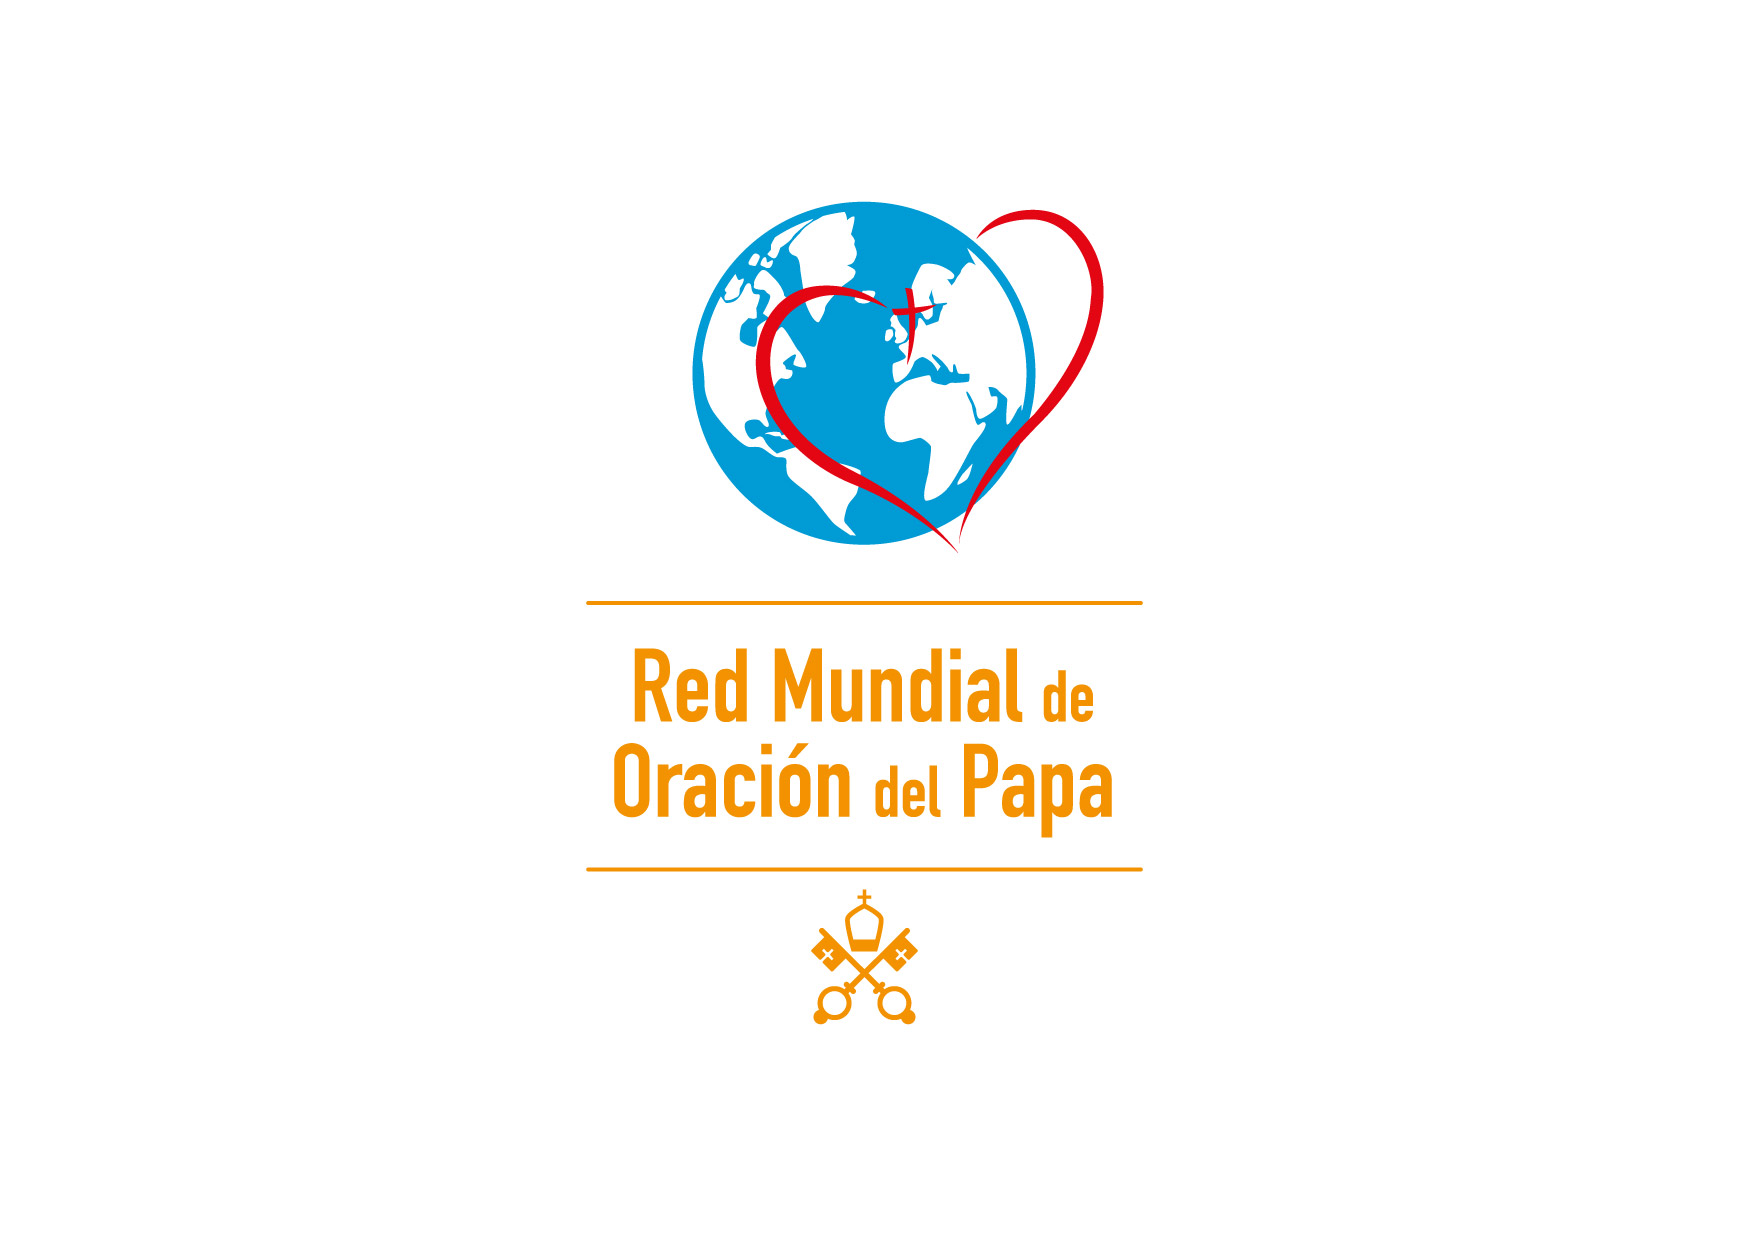 Logo Red Mundial de Oración del Papa-Pontifical Work-SP-Vertical